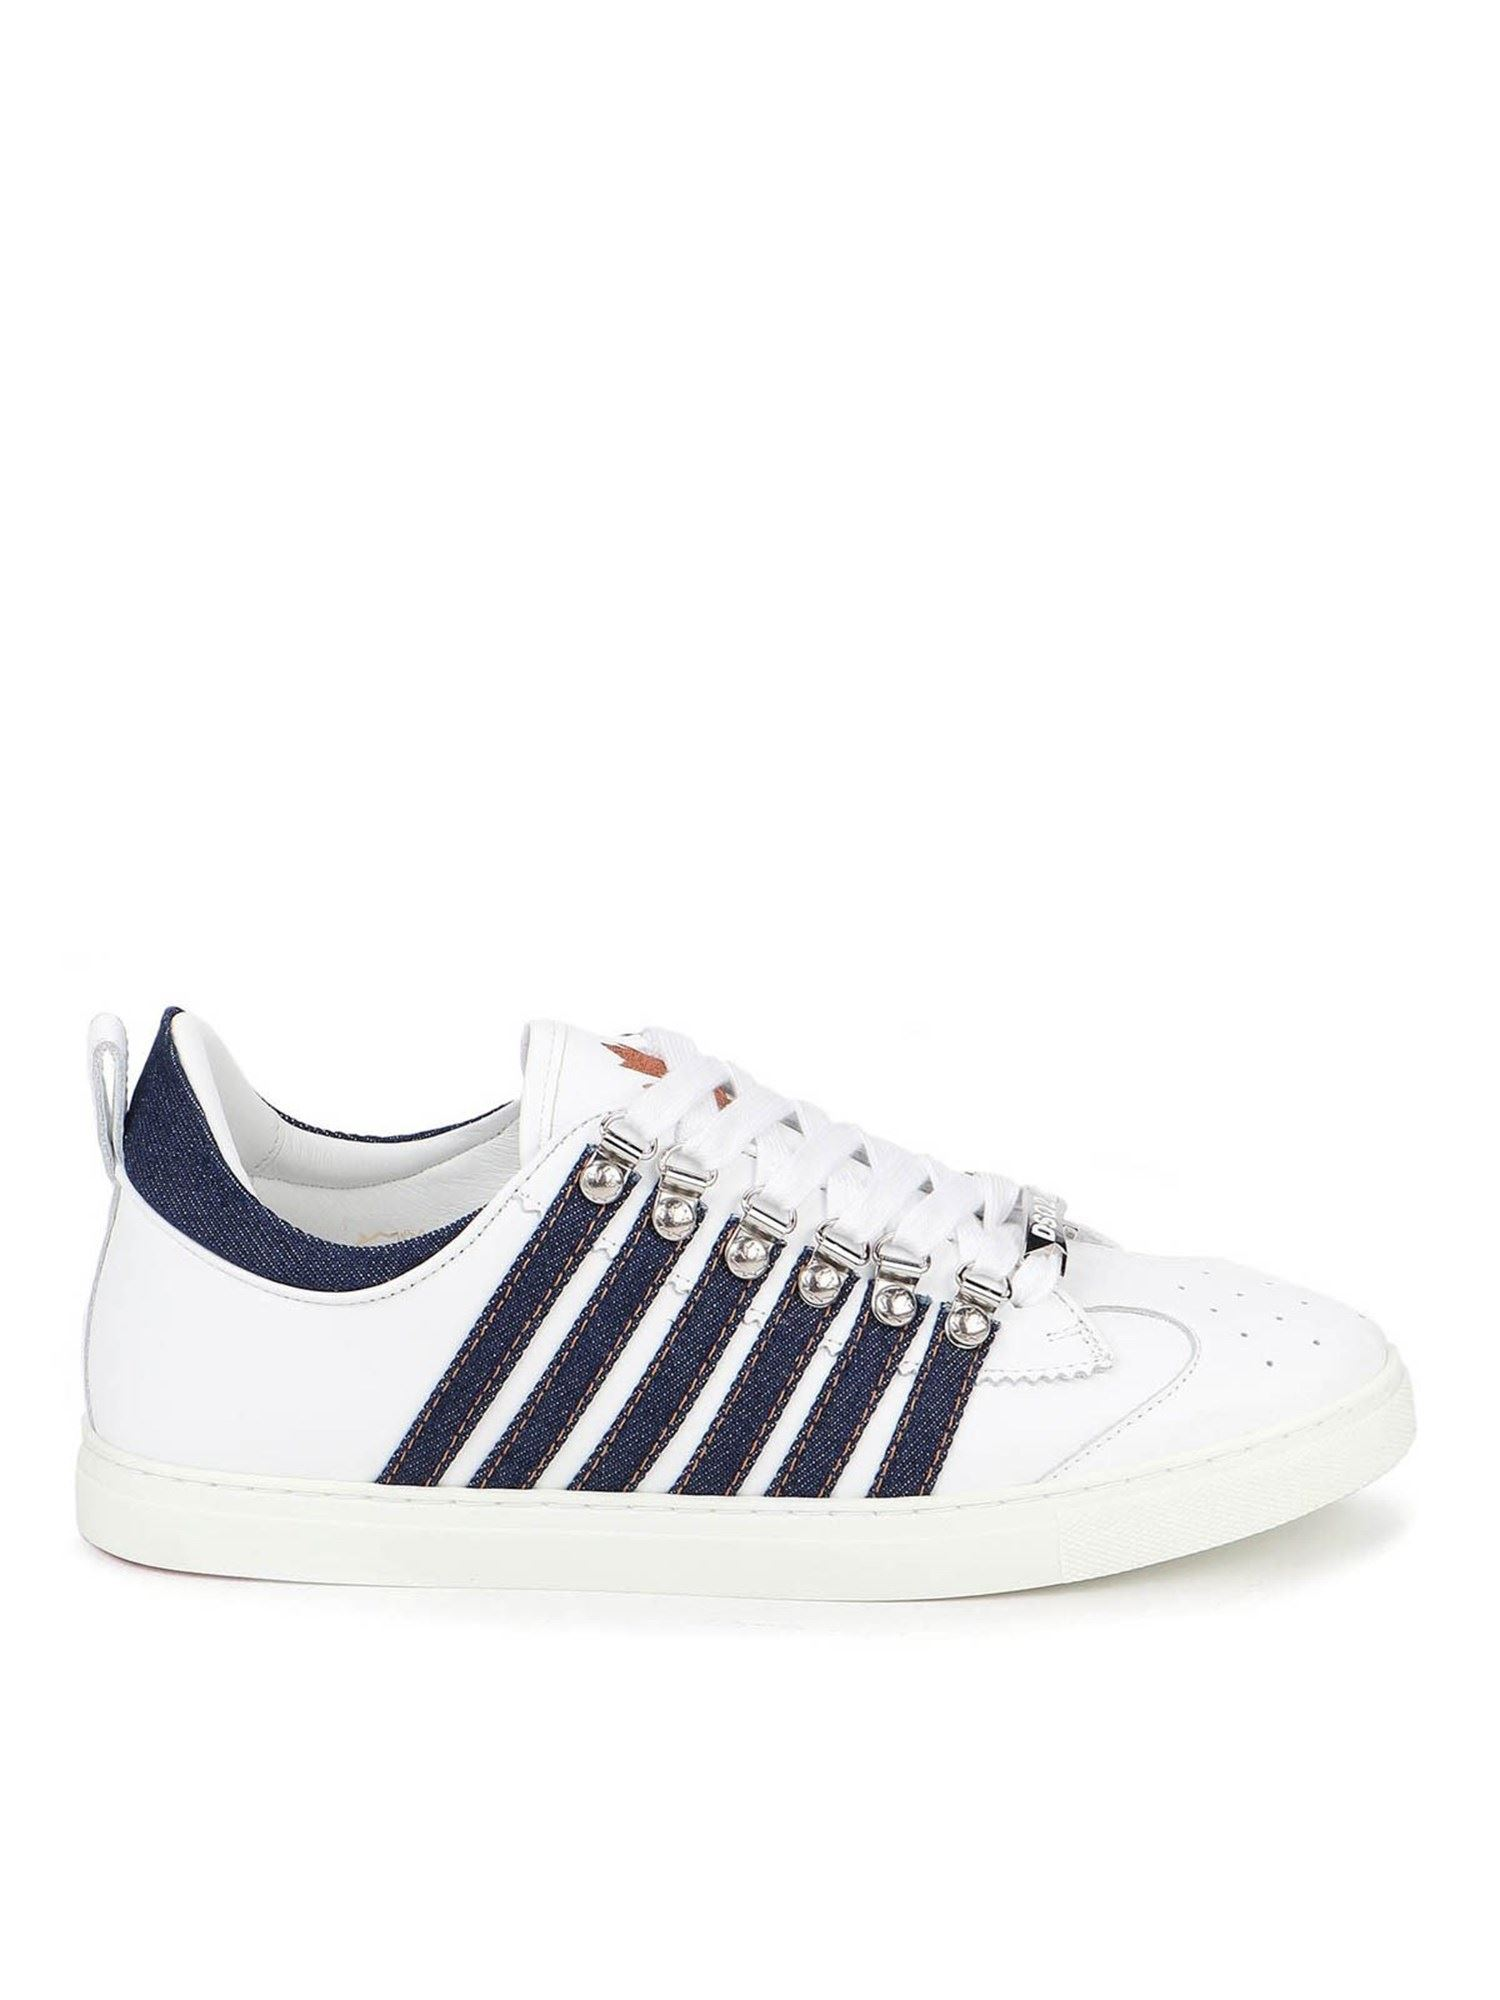 Dsquared2 DENIM DETAILED SNEAKERS IN WHITE